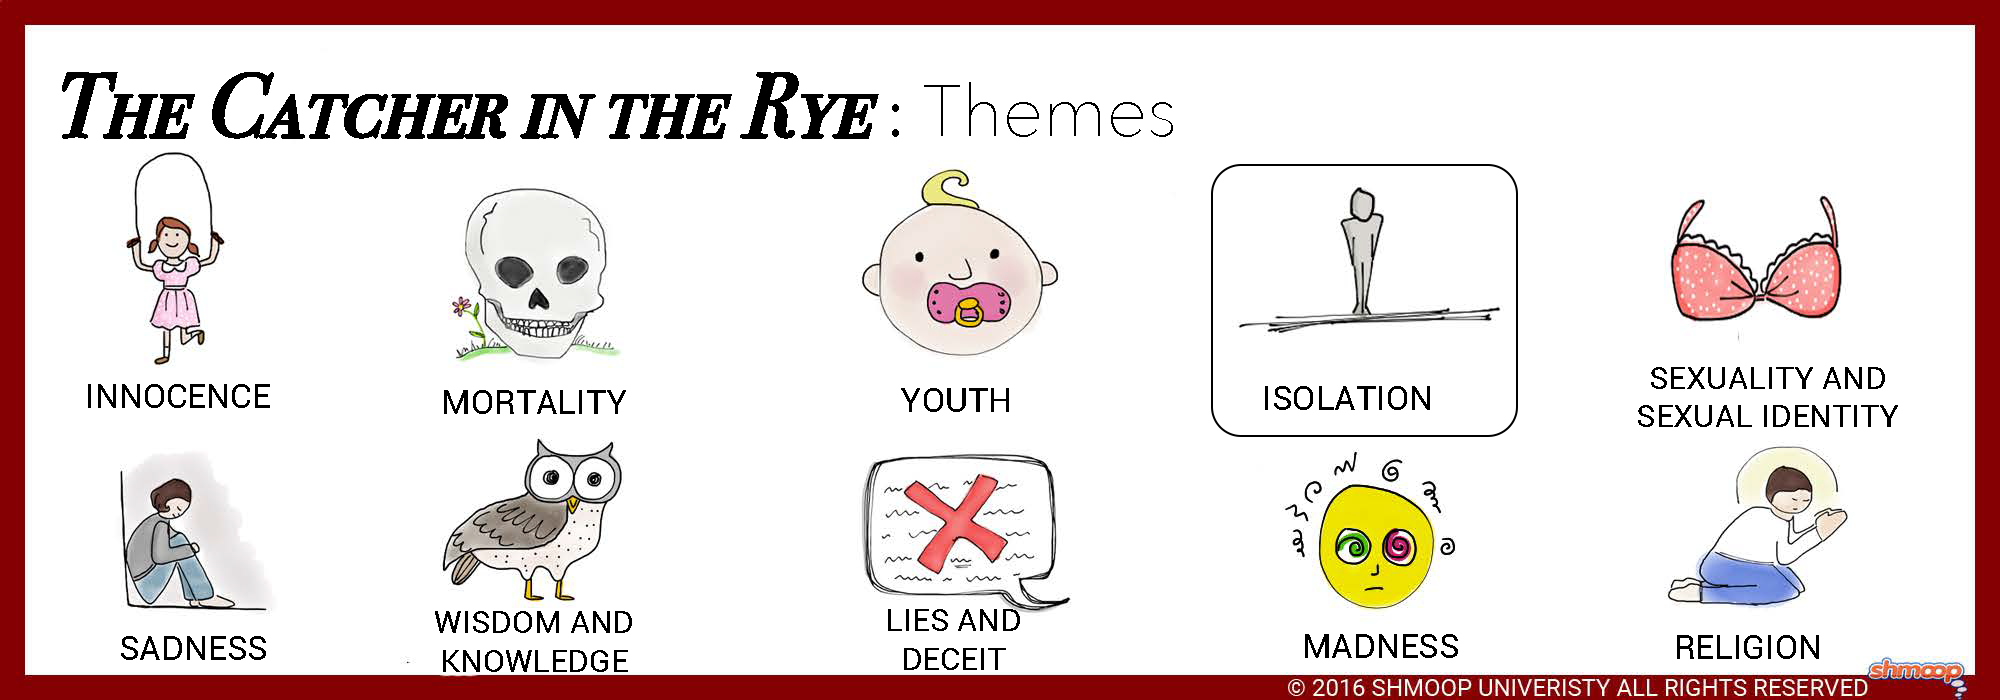 theme help on the thesis in the rye